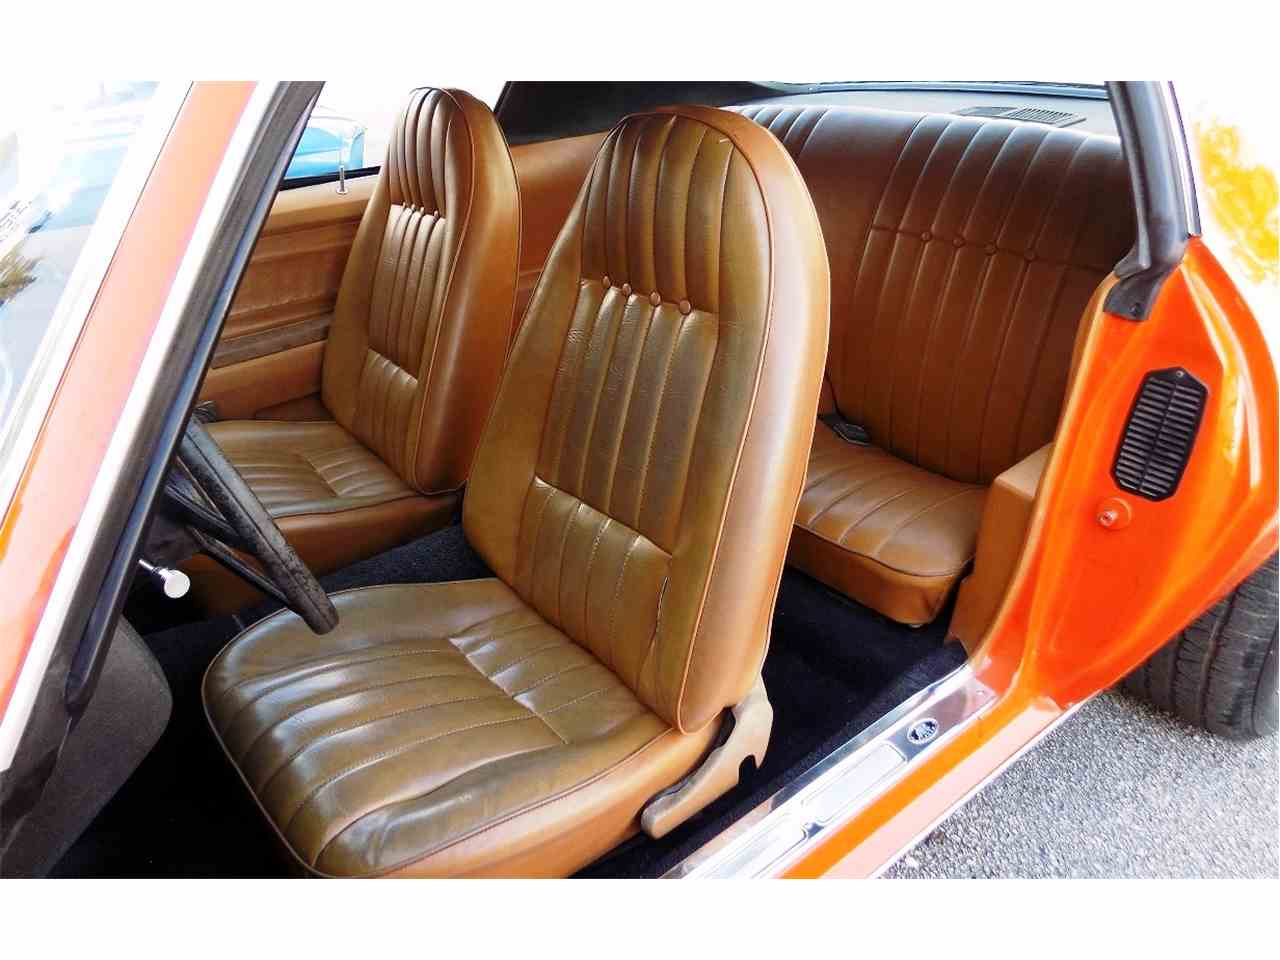 Large Picture of Classic '72 Chevrolet Camaro located in POMPANO BEACH Florida - $19,995.00 Offered by Cool Cars - MG21